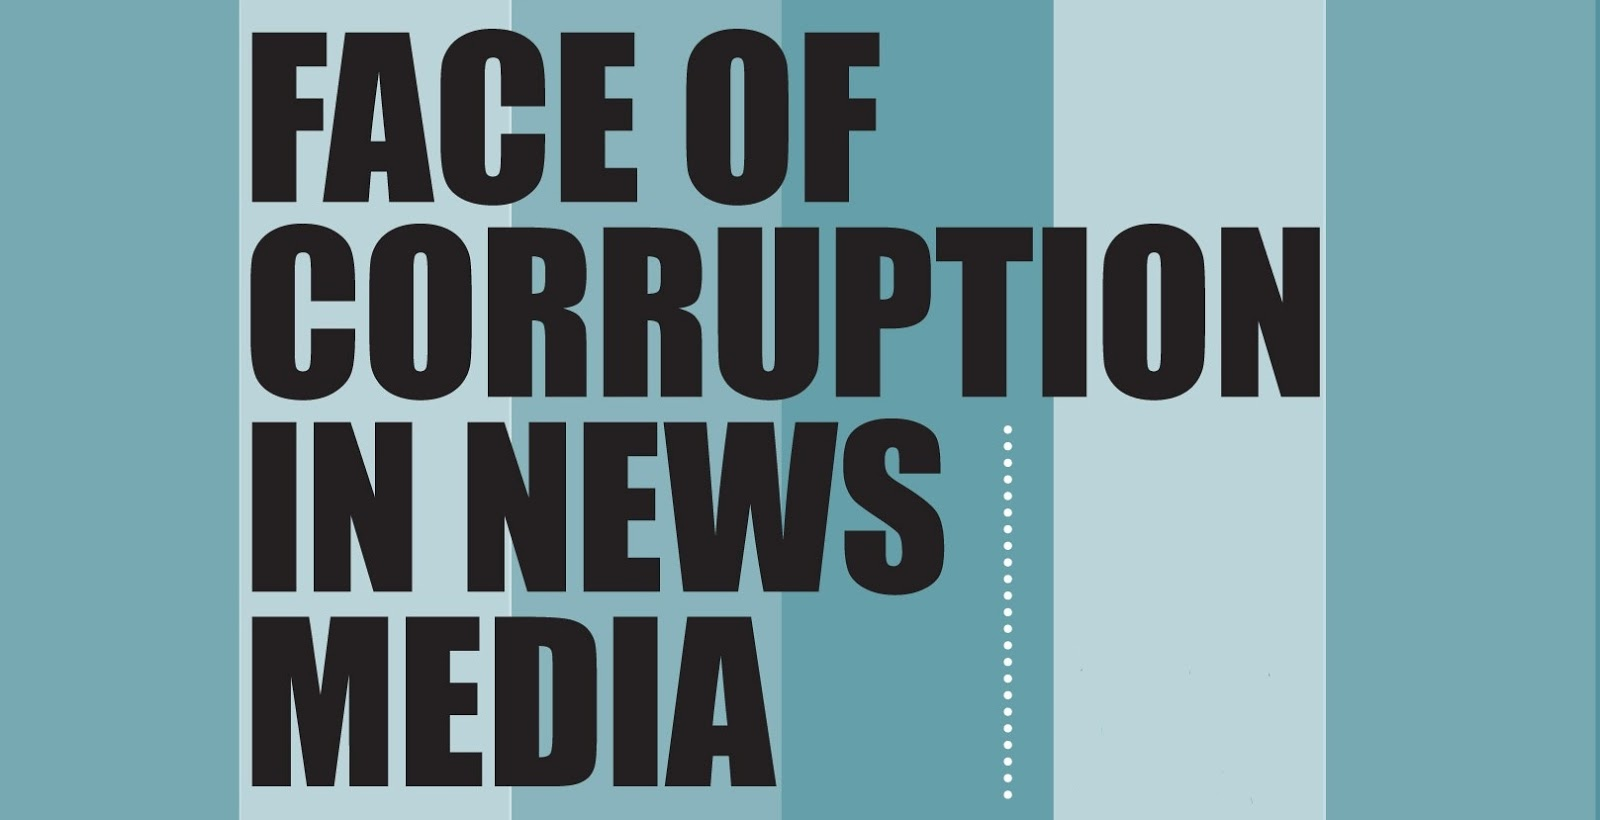 Media reports on corruption